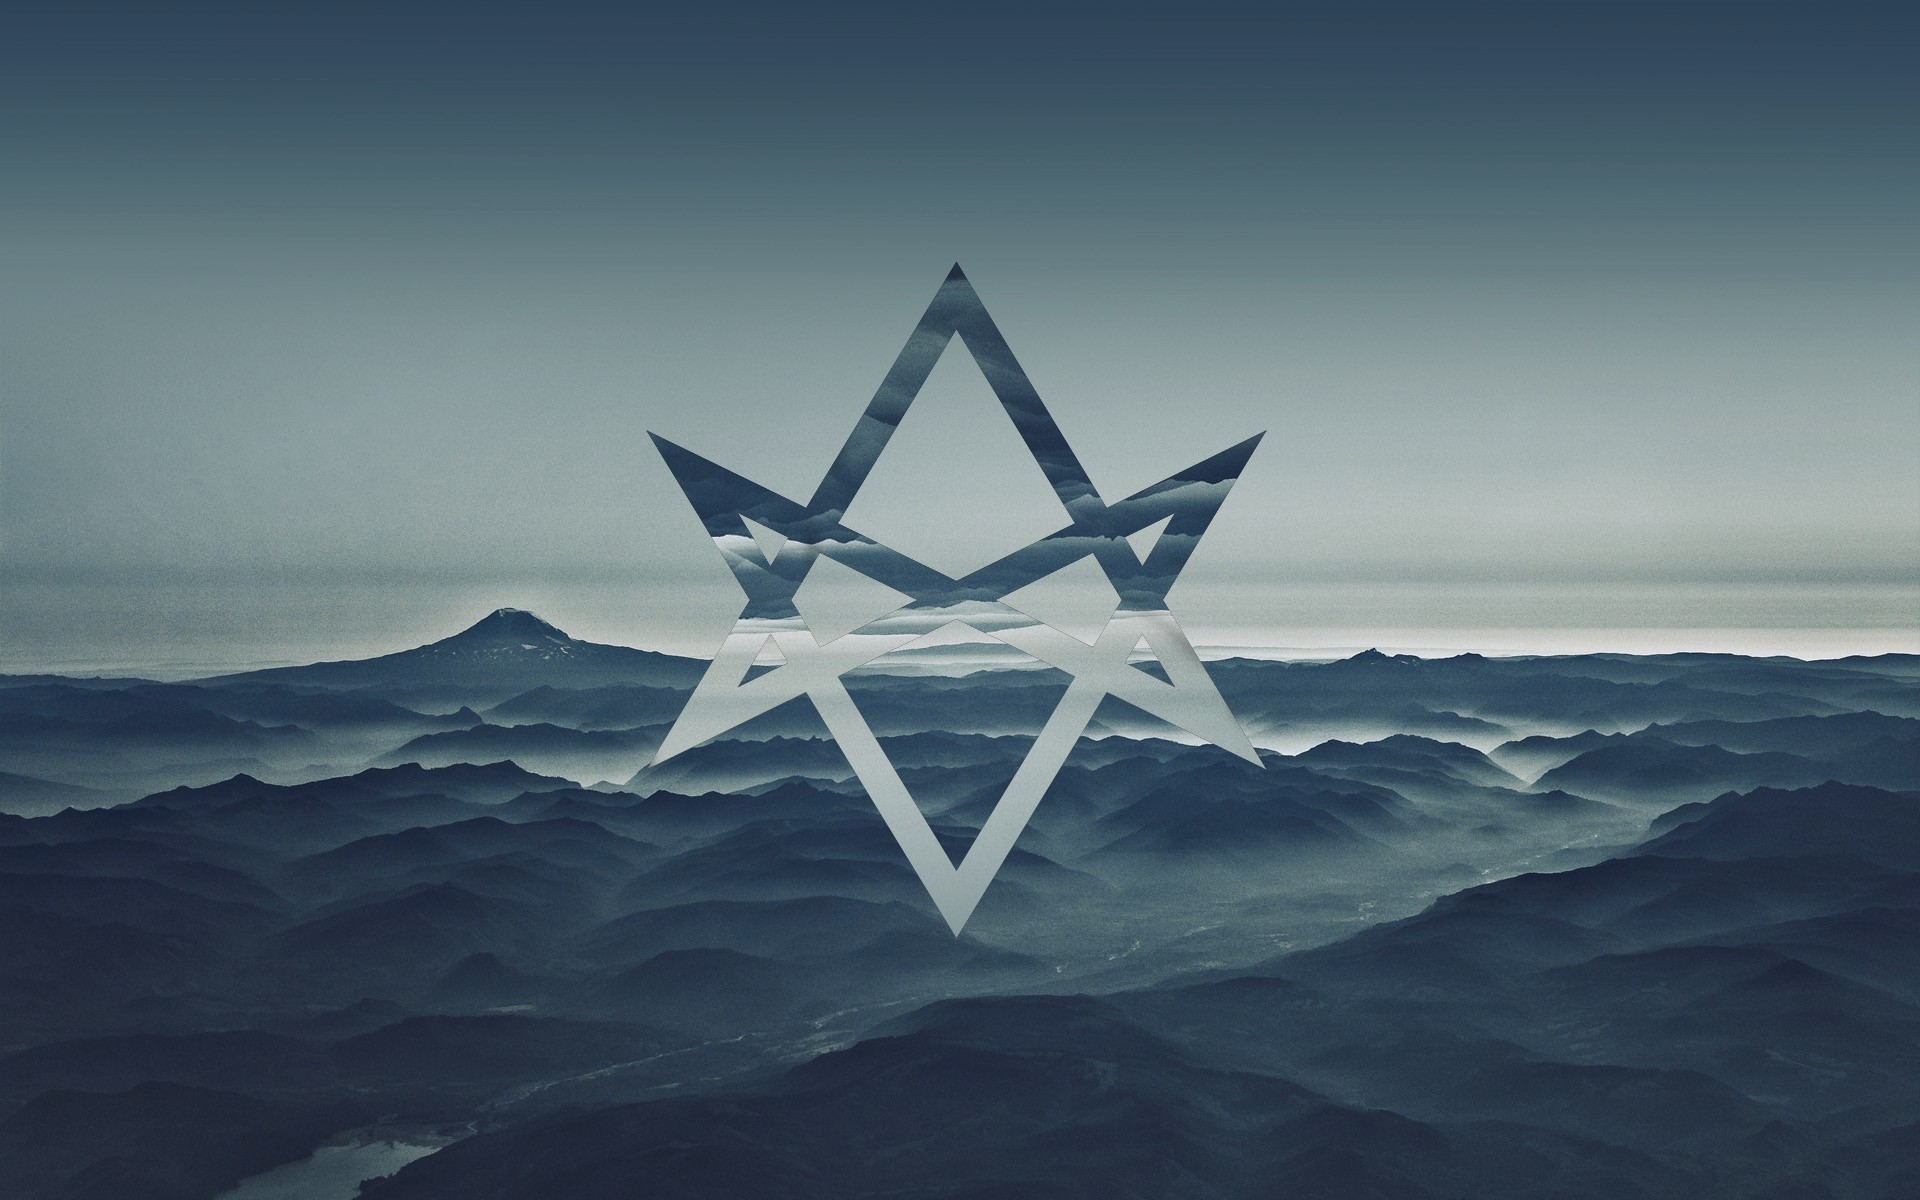 Cool Cars Wallpaper For Mobile Thelema Unicursal Hexagram Sea Blue Sky Abstract